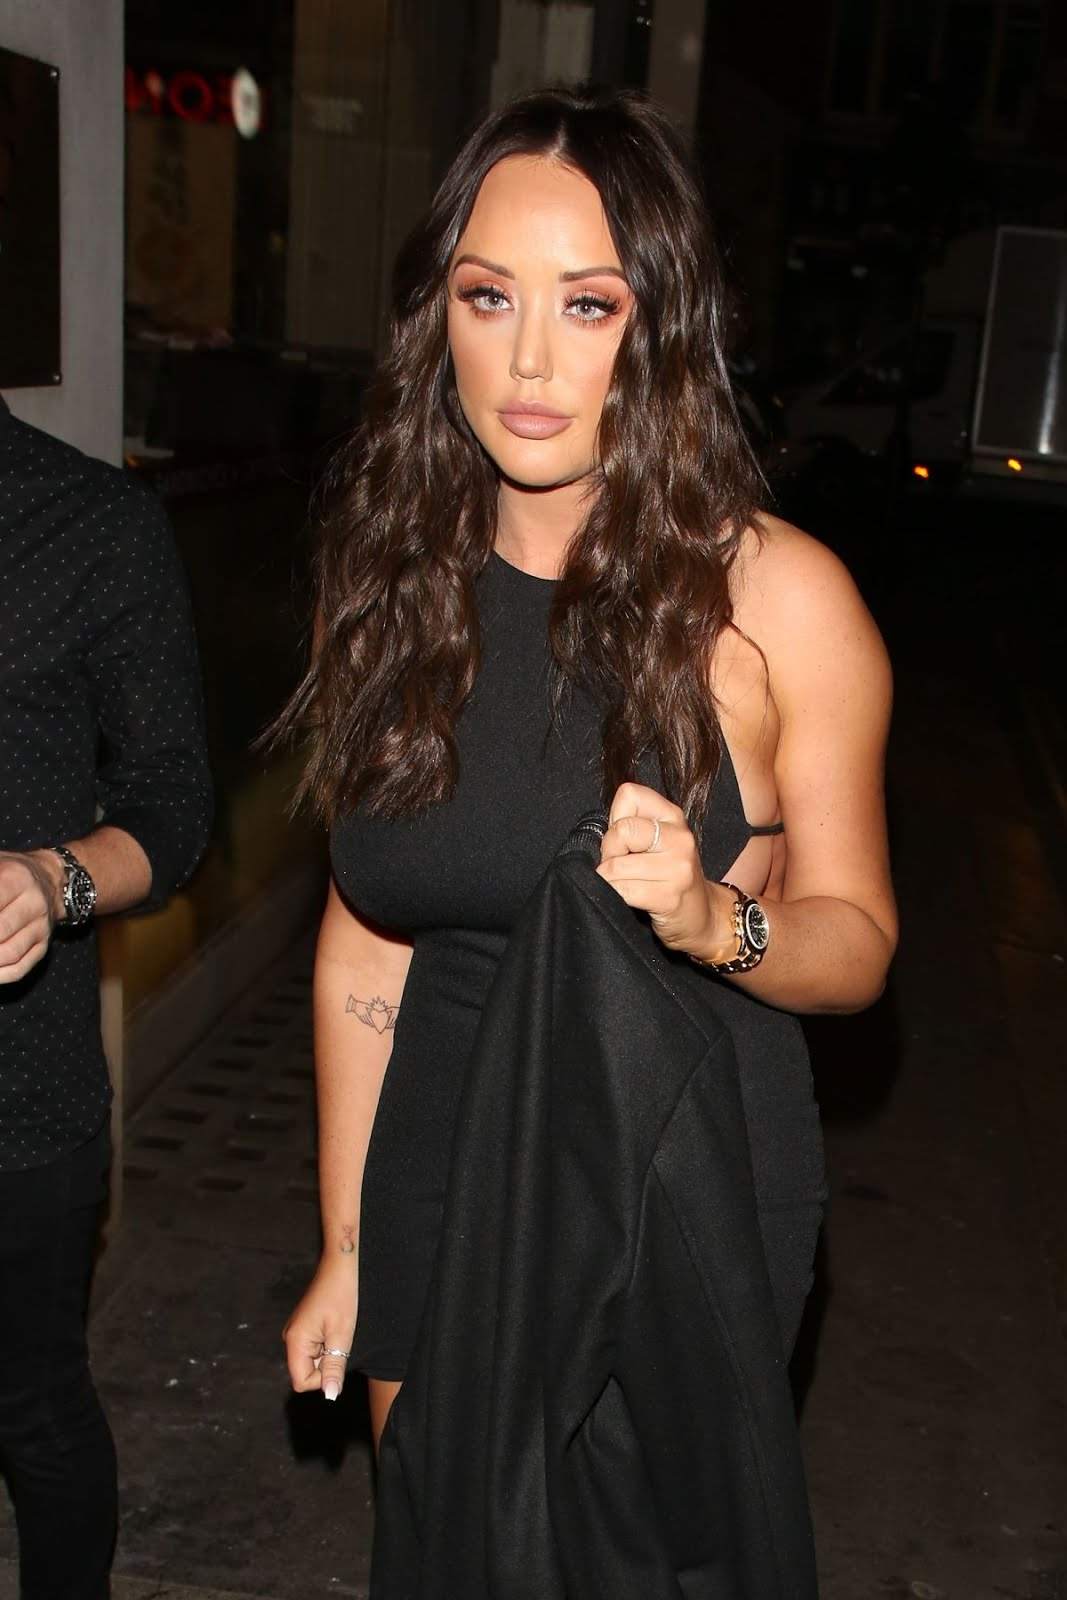 Charlotte Crosby Arrives At Valentines Party At Libertine Nightclub In London